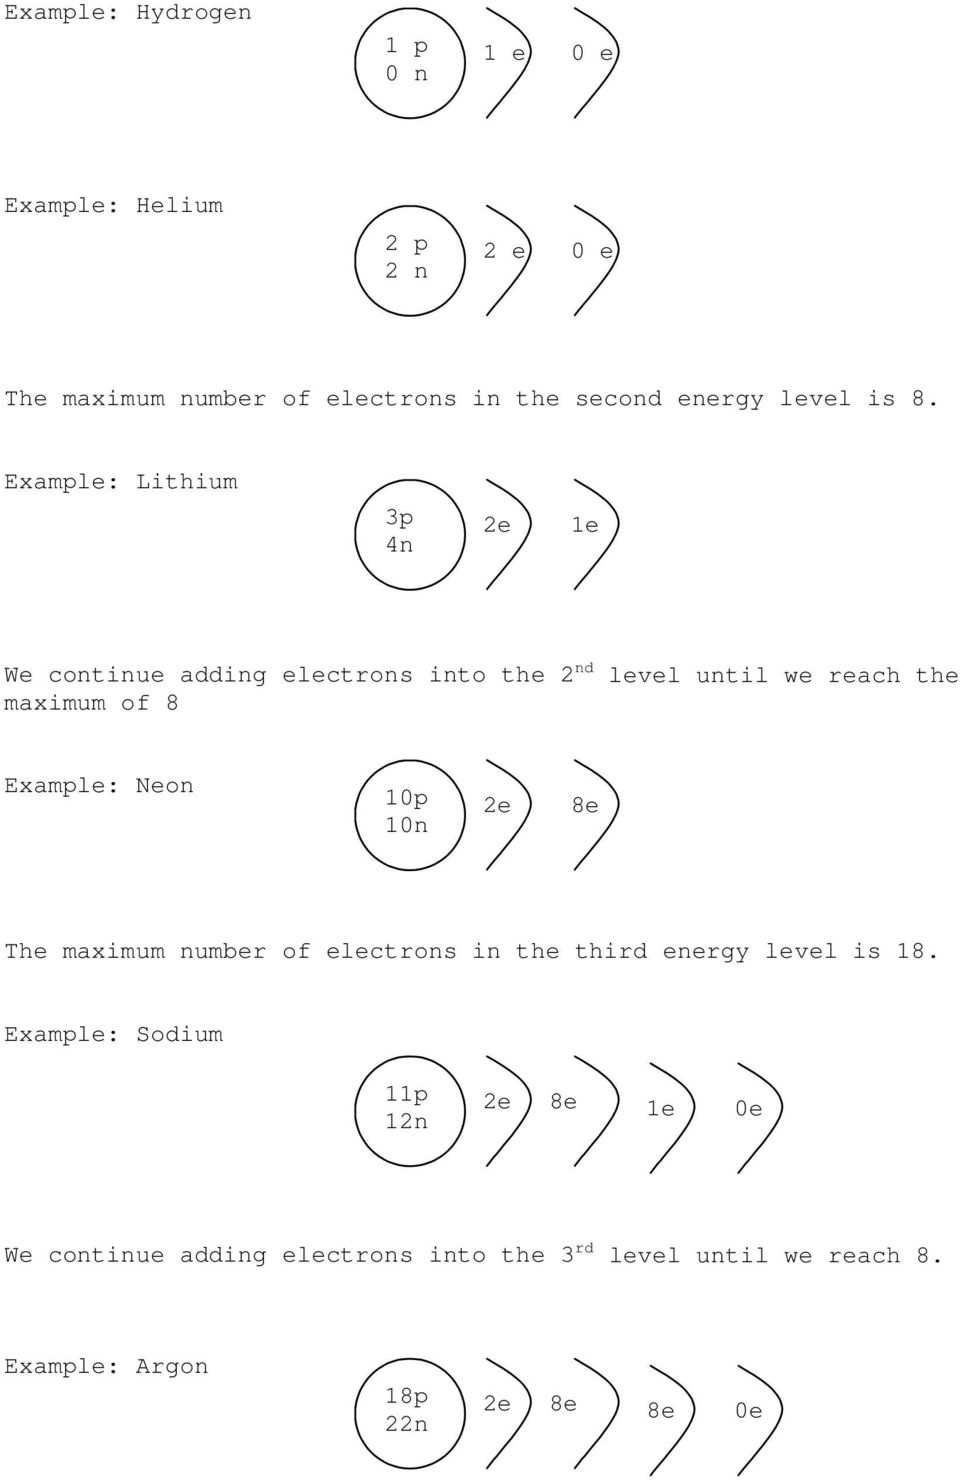 hight resolution of example lithium 3p 4n 1e we continue adding electrons into the 2 nd level until